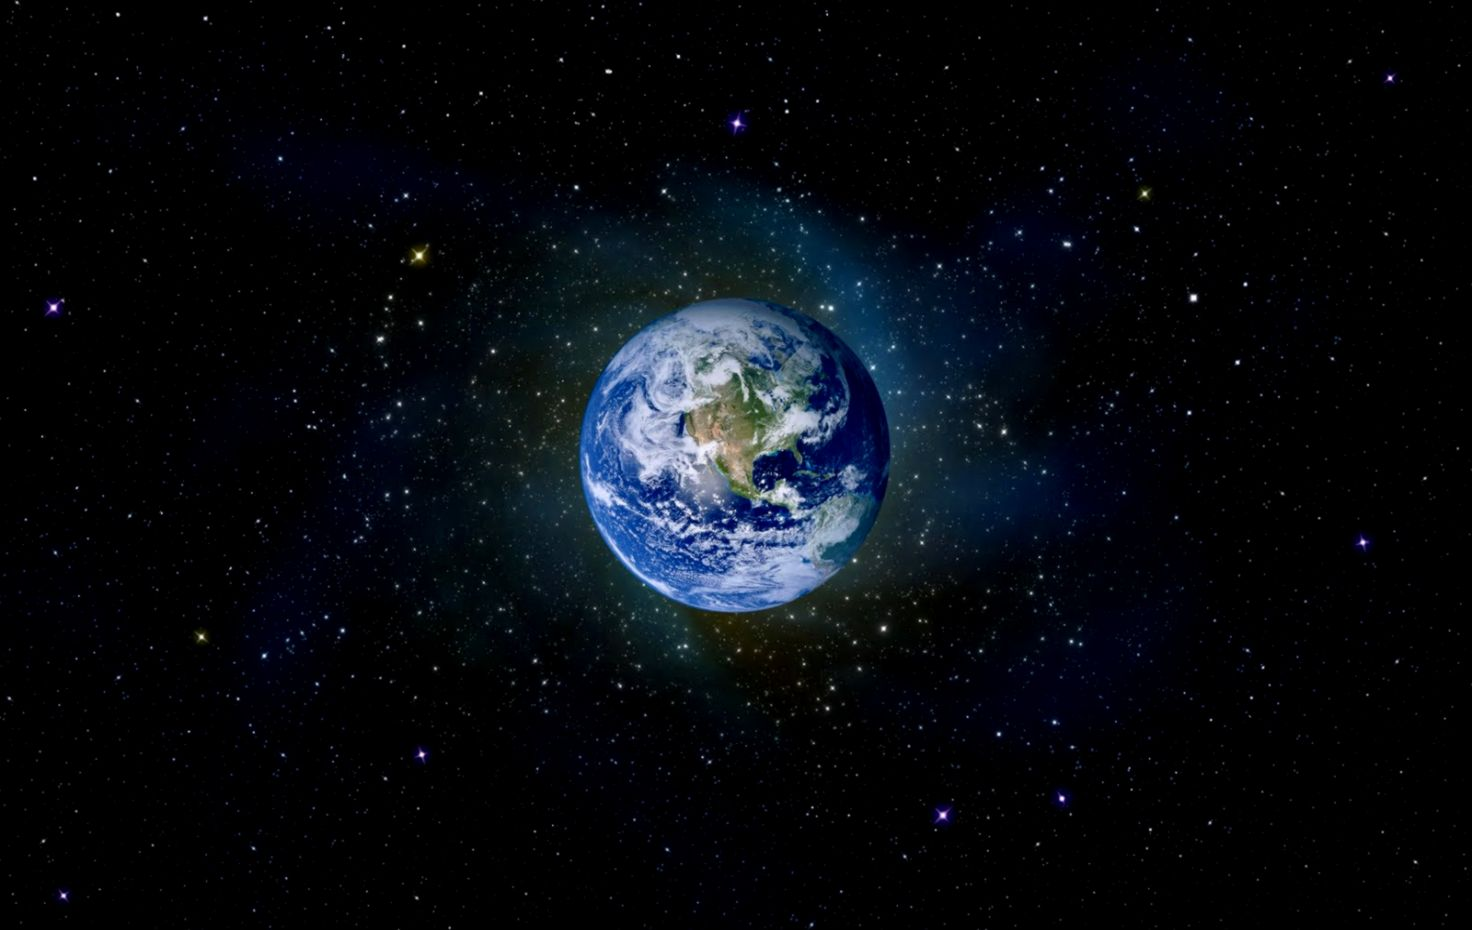 Watch - Hd space wallpapers earth video